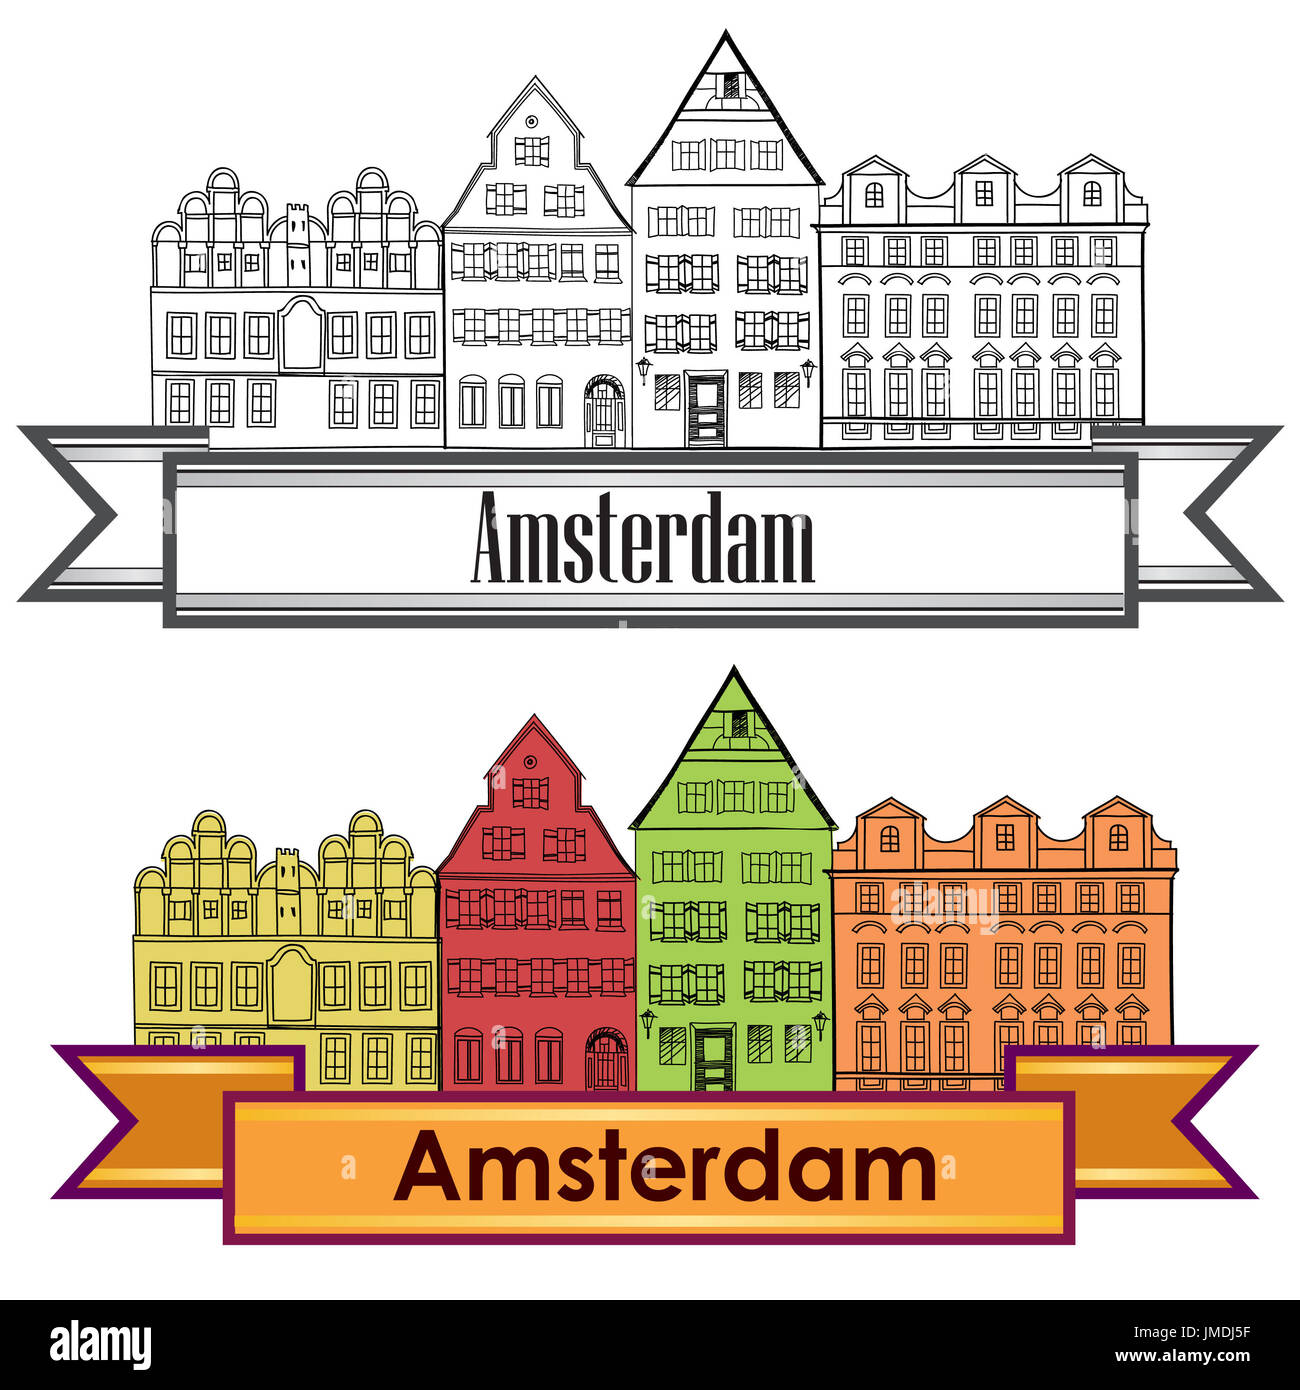 Amsterdam canal houses. Netherlands symbol. Travel Europe icon. - Stock Image